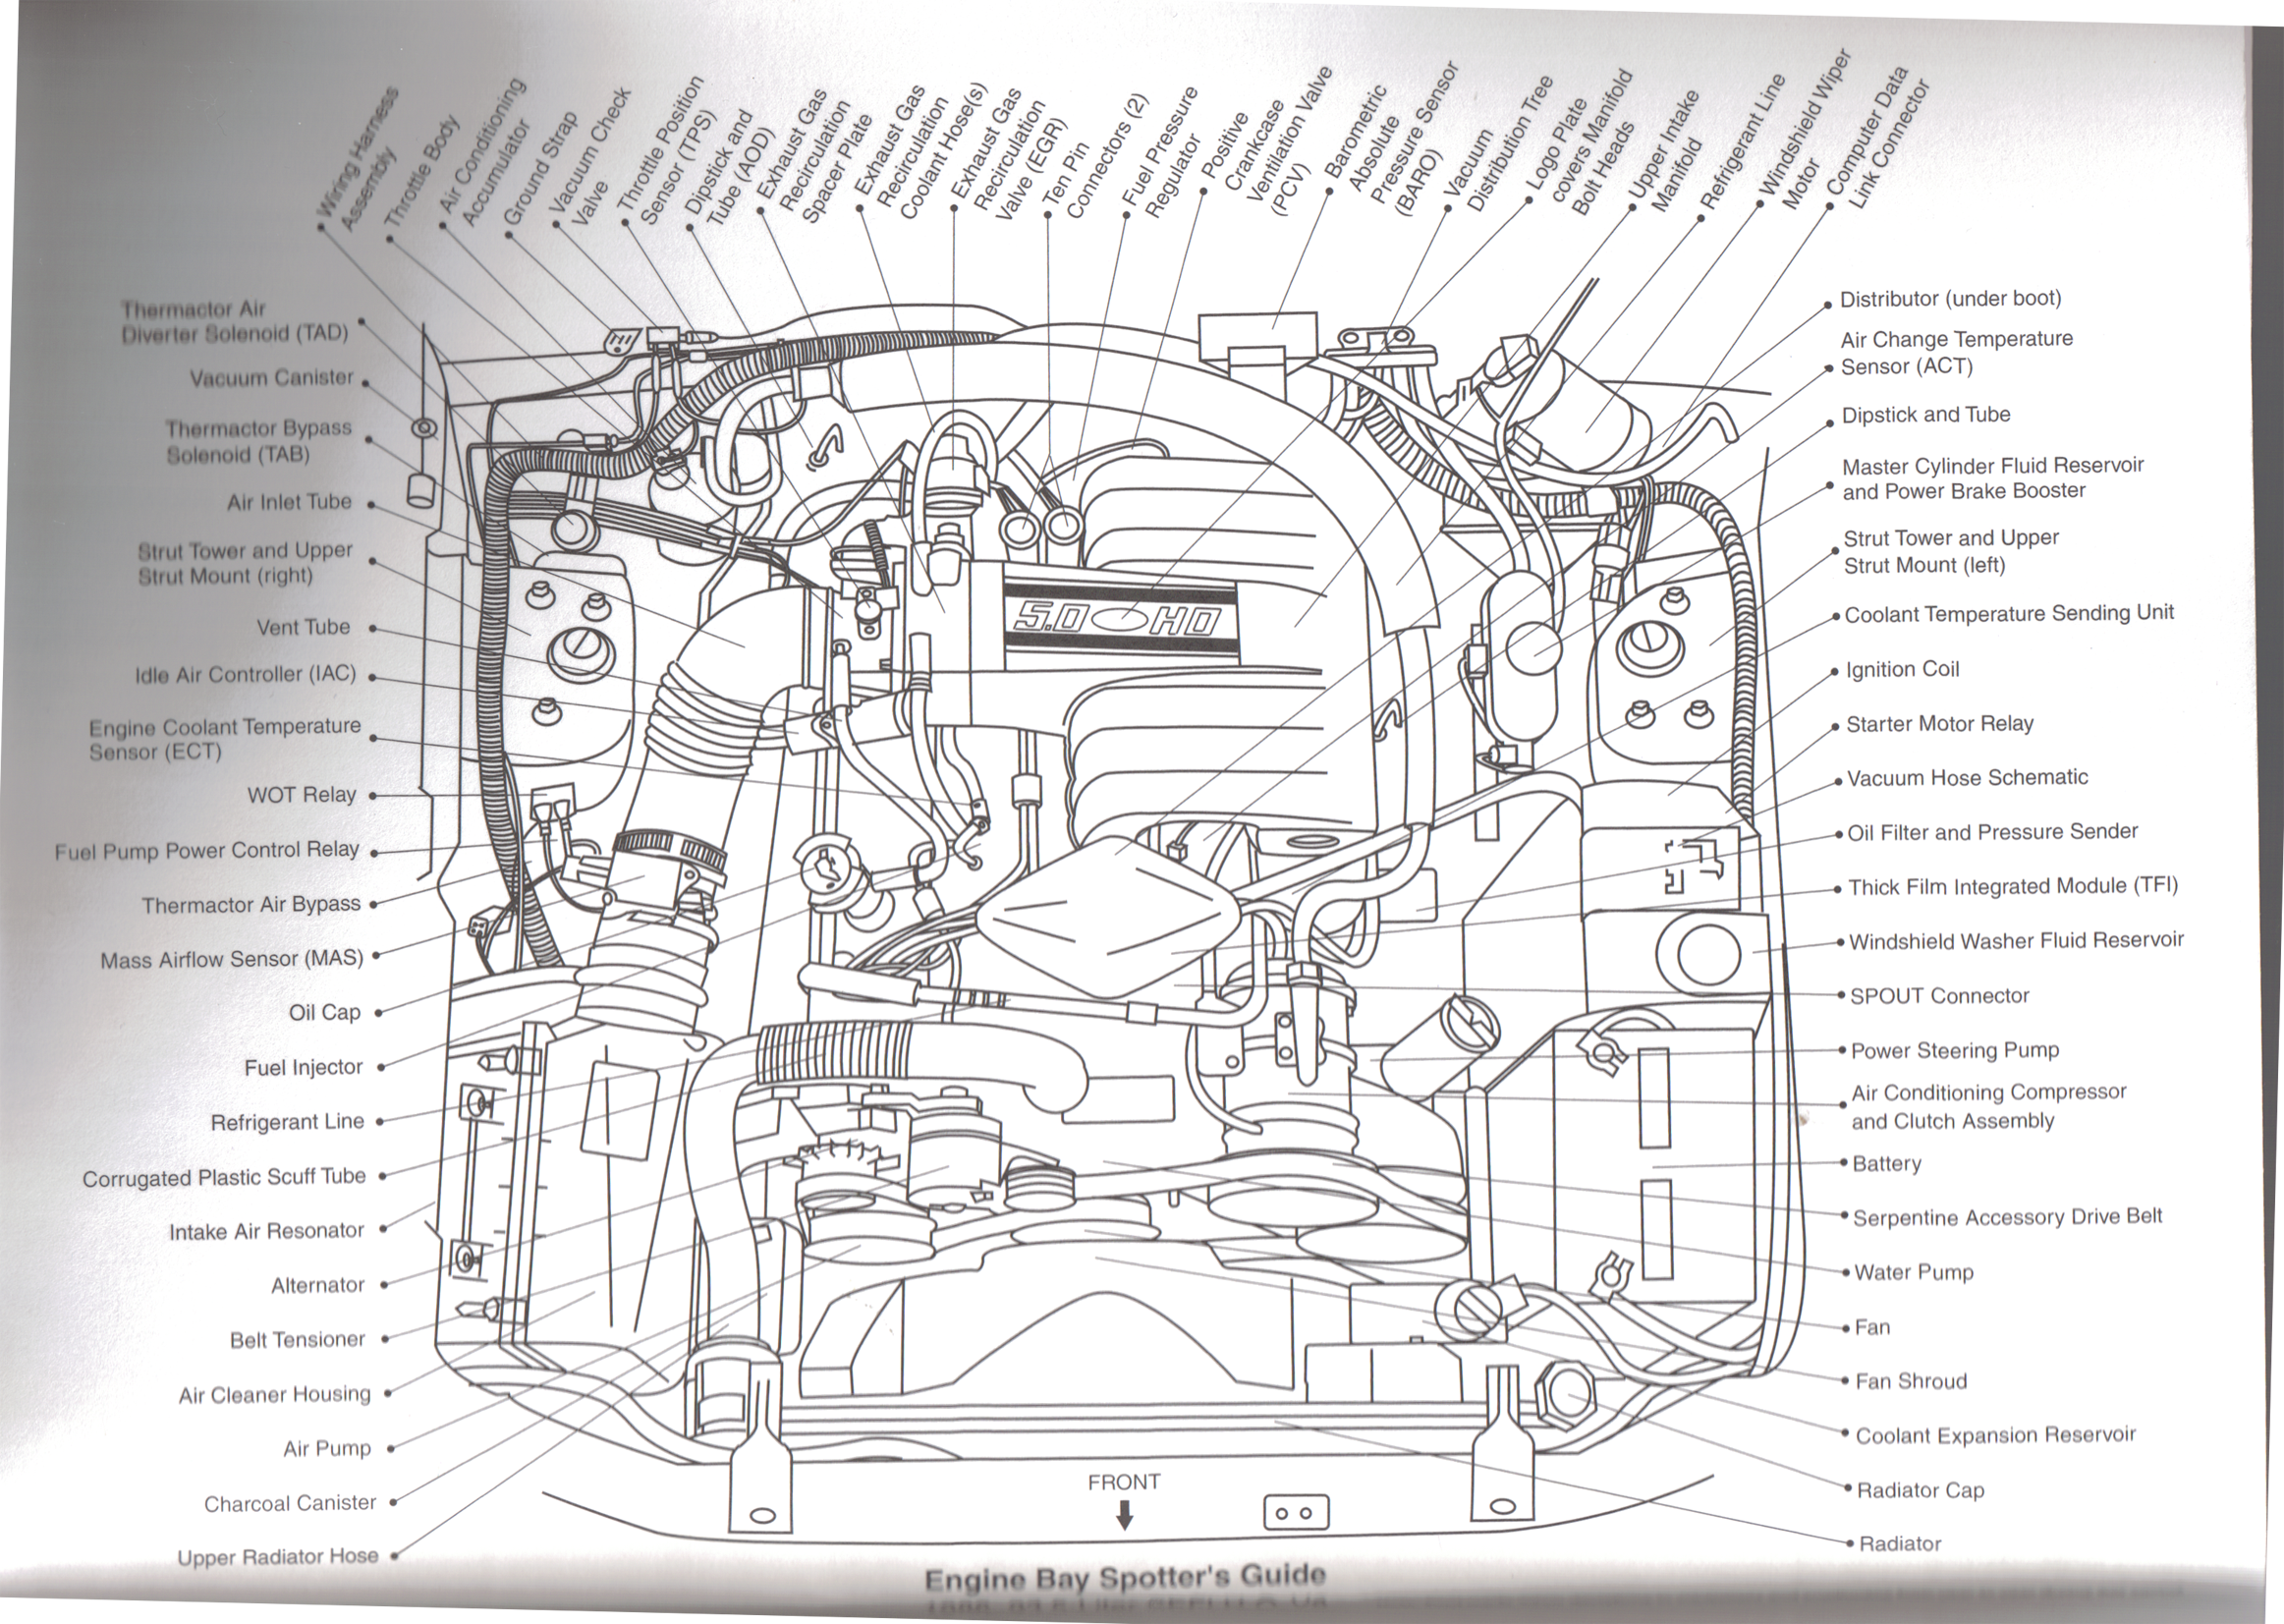 1987 1993 foxbody 5.0 sefi v8 engine part diagram everything you need to know about 1979 1993 foxbody mustangs 93 ford mustang wiring diagram at soozxer.org